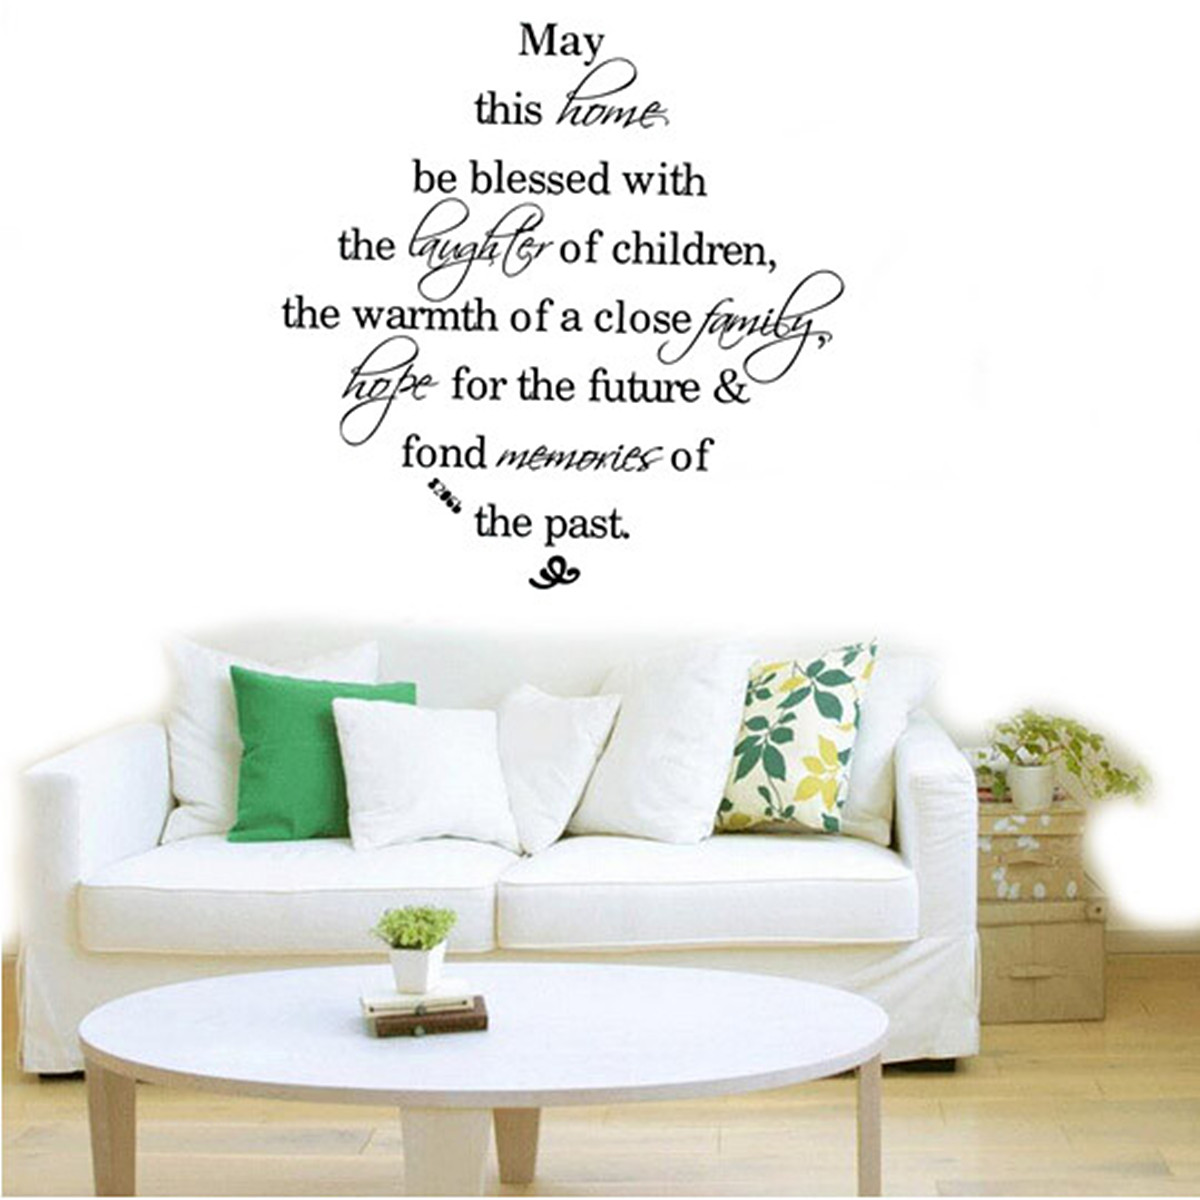 Details about Quote Word Decal Vinyl DIY Home Room Decor Art Wall Stickers  Bedroom Removable !